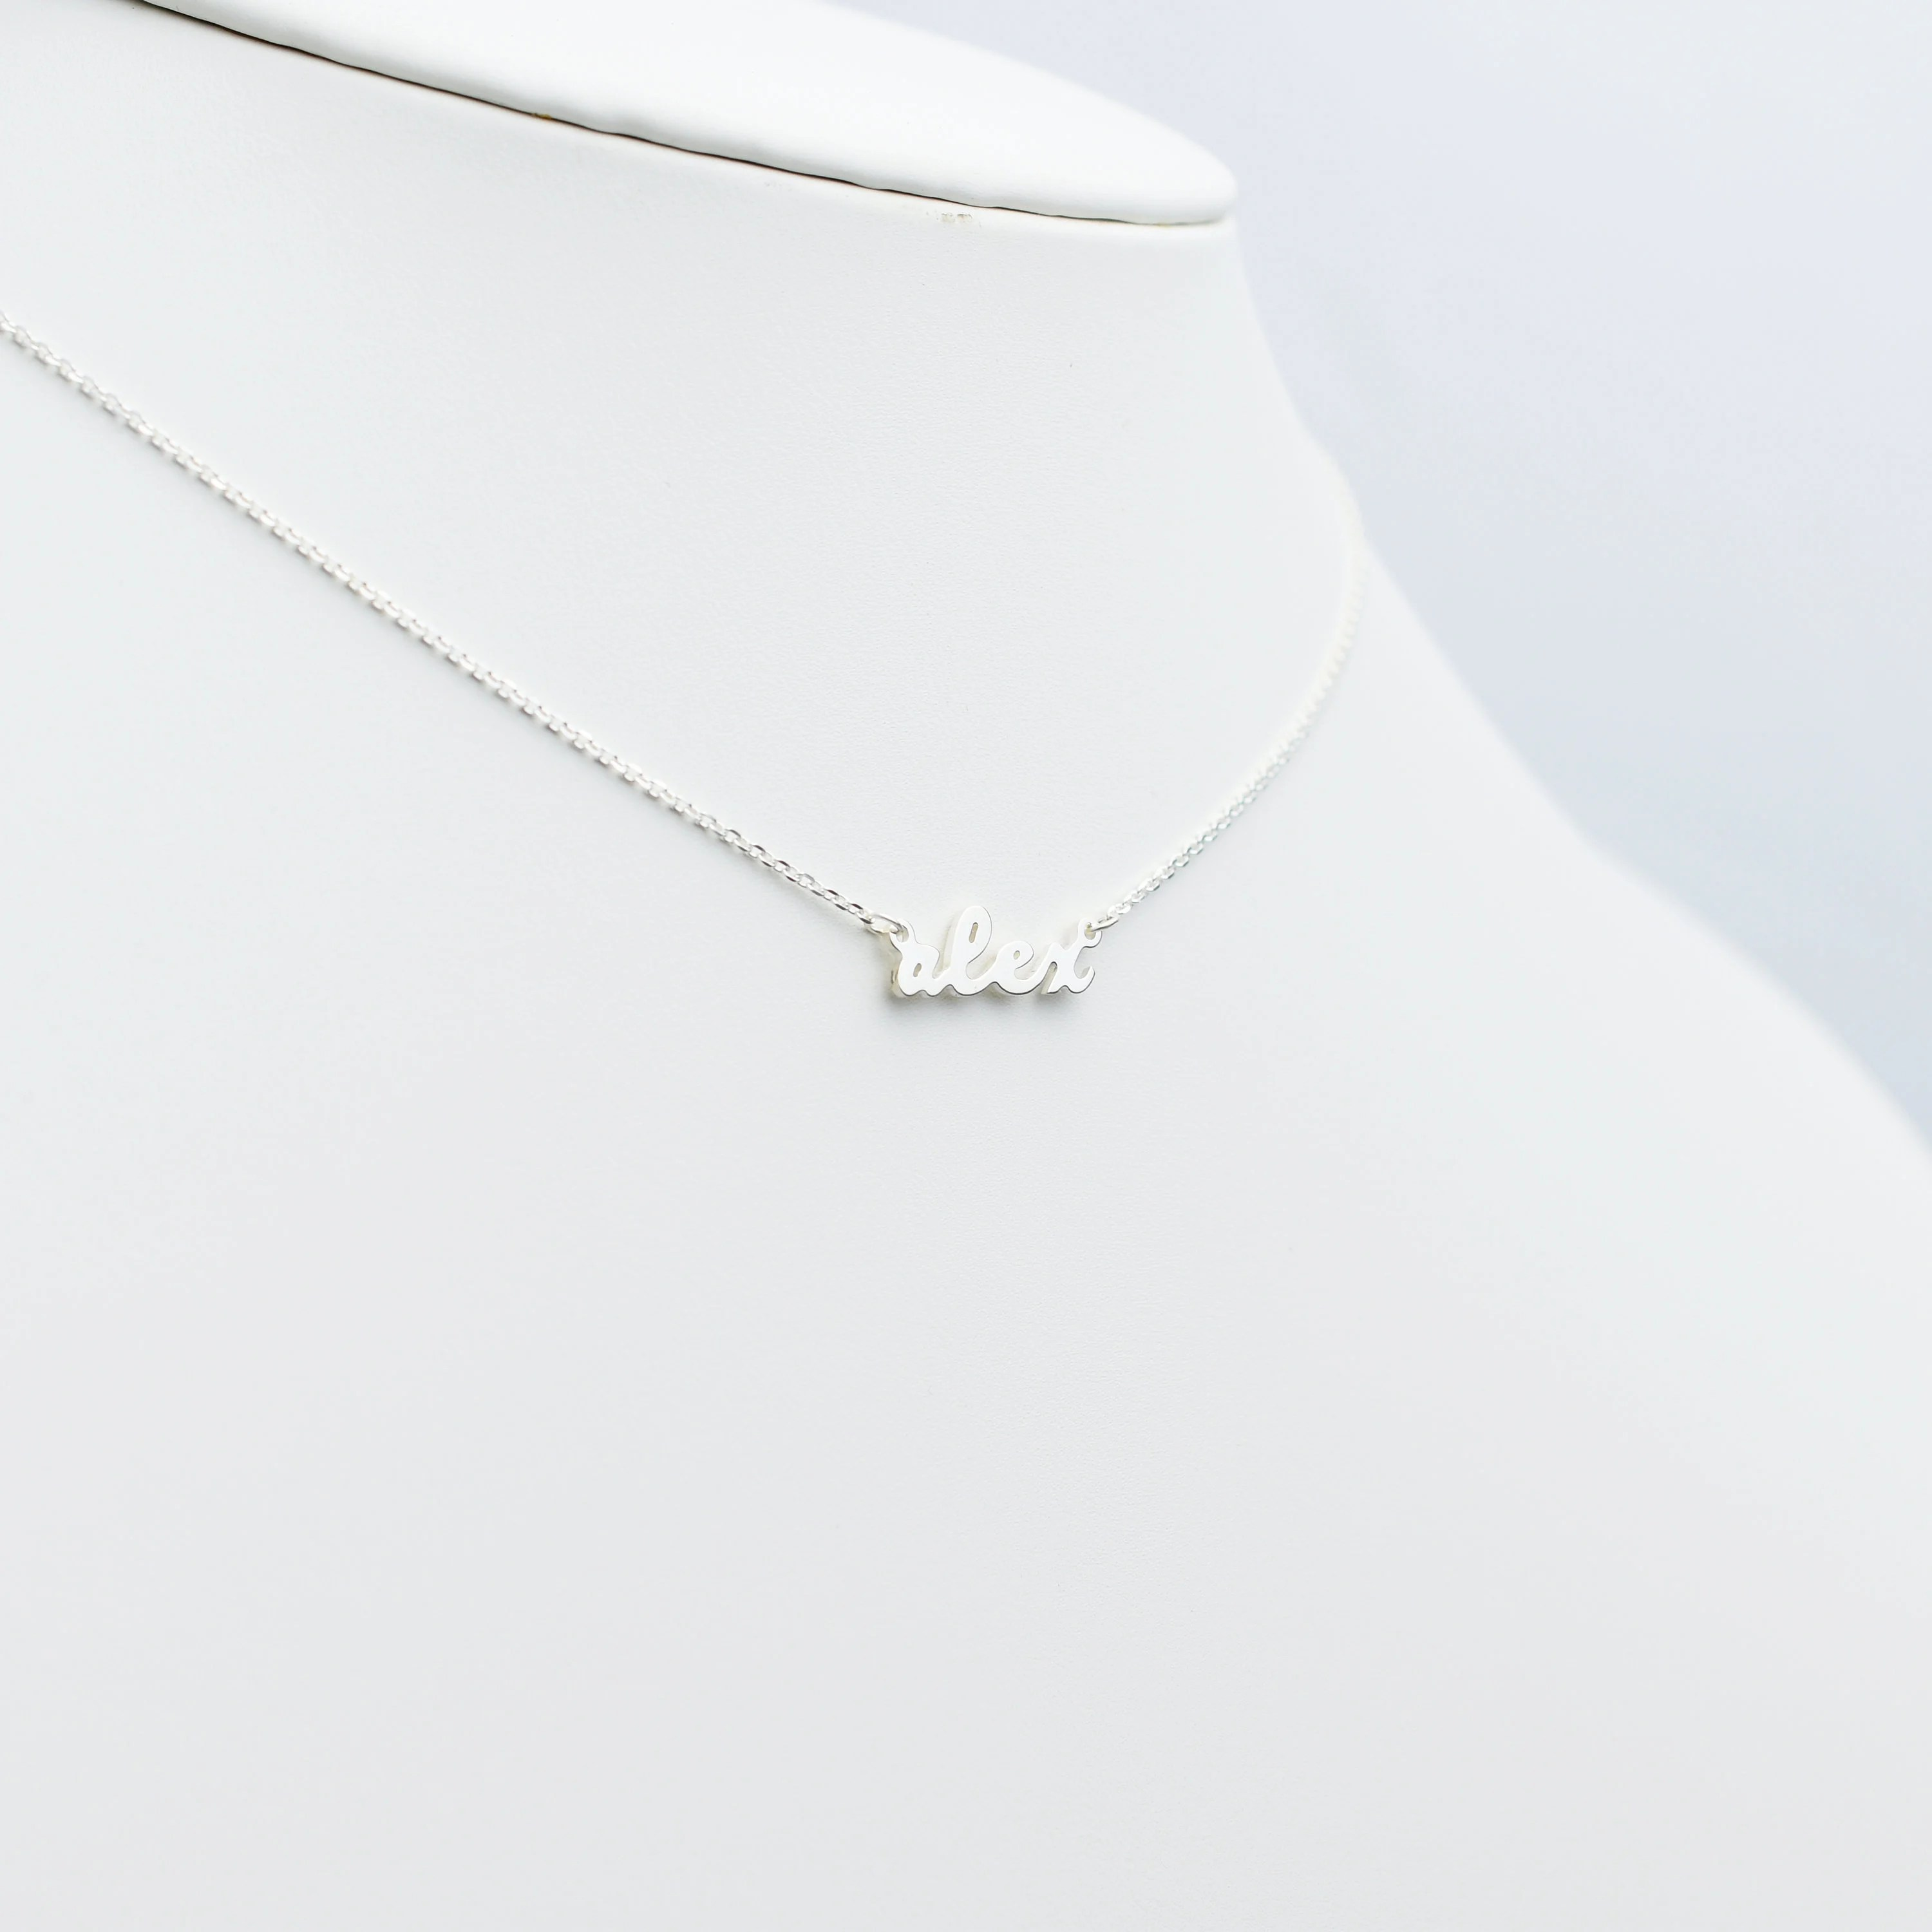 Best Dainty Name Necklace Tiny Name Necklace for Her image 2